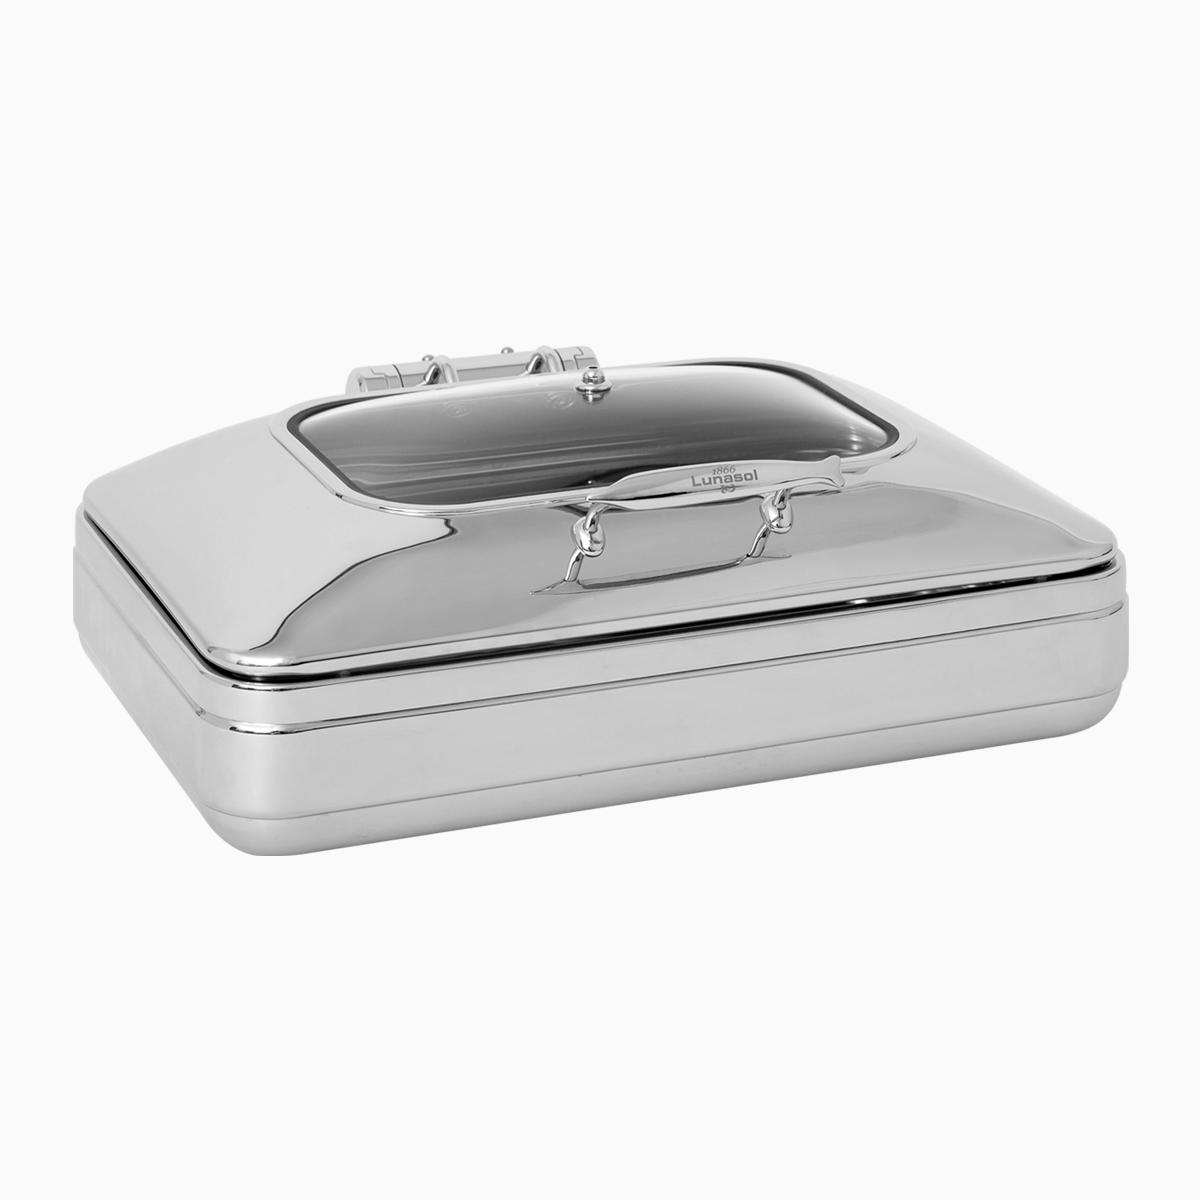 Chafing dish with window lid